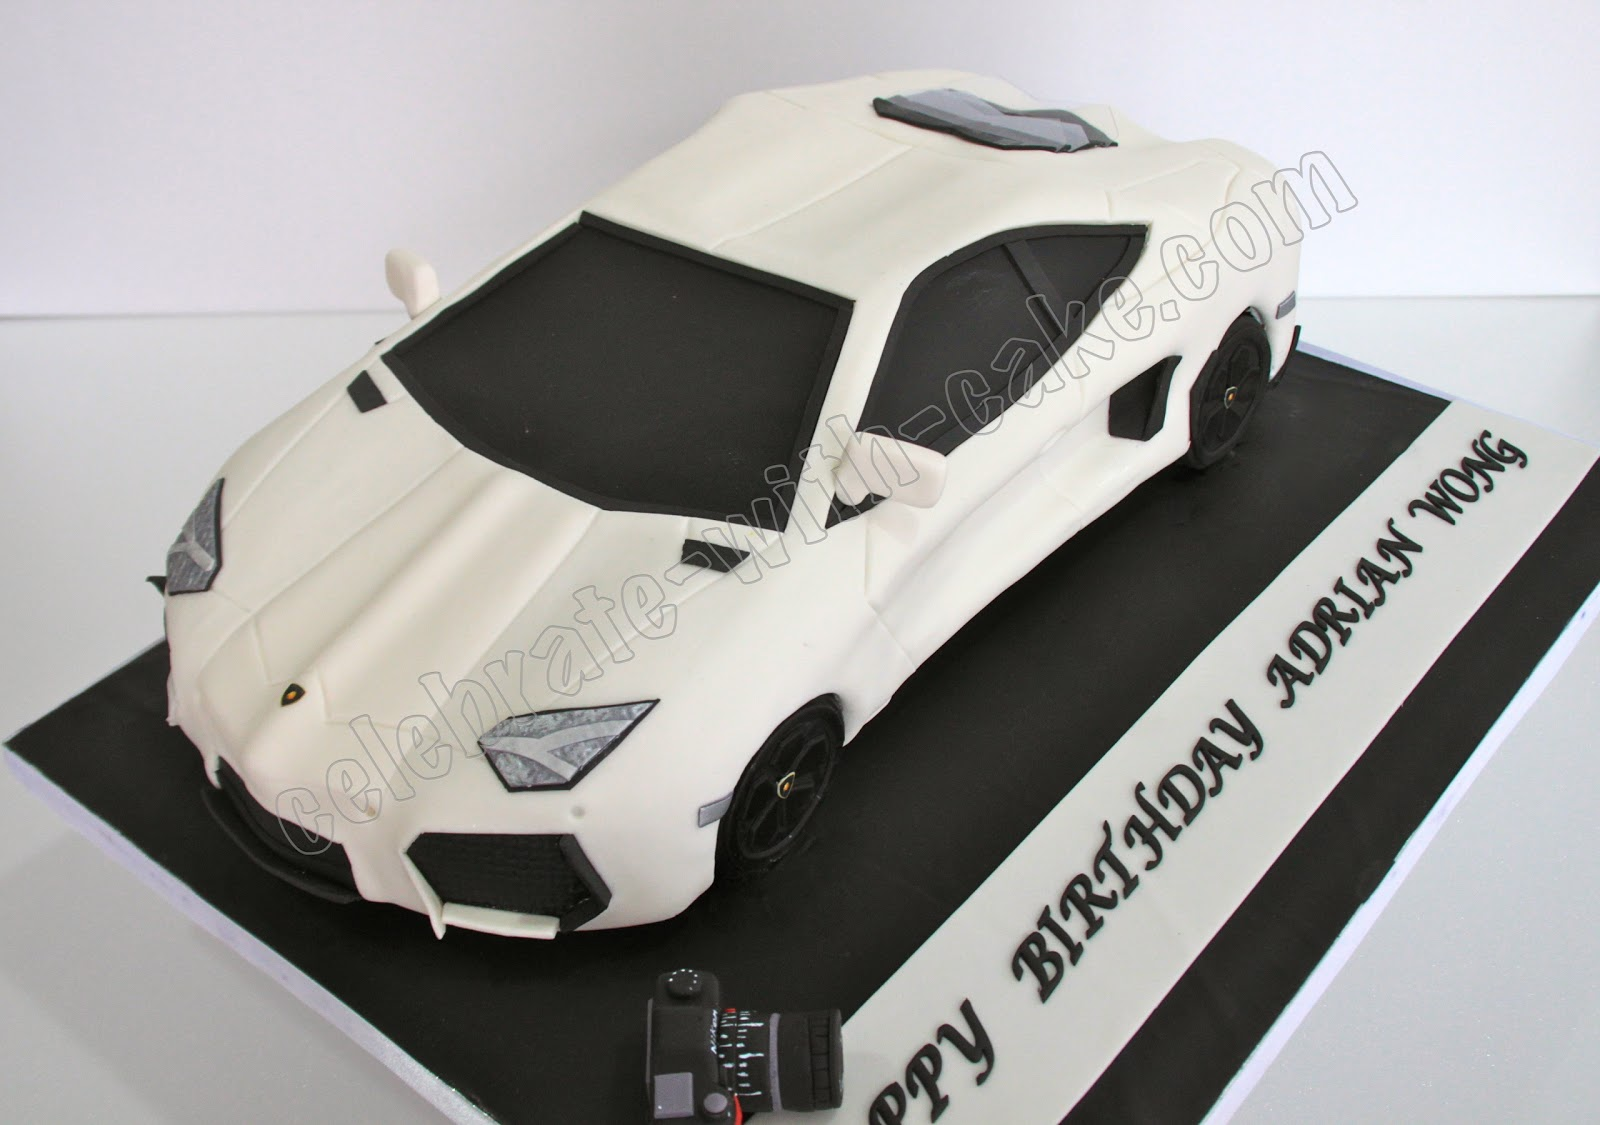 Planning And Scaling The Car Down To The Correct Proportions Was Already A  3 Hour Job, The Cake Carving Was Another 4 Hour Thing, All In All, ...